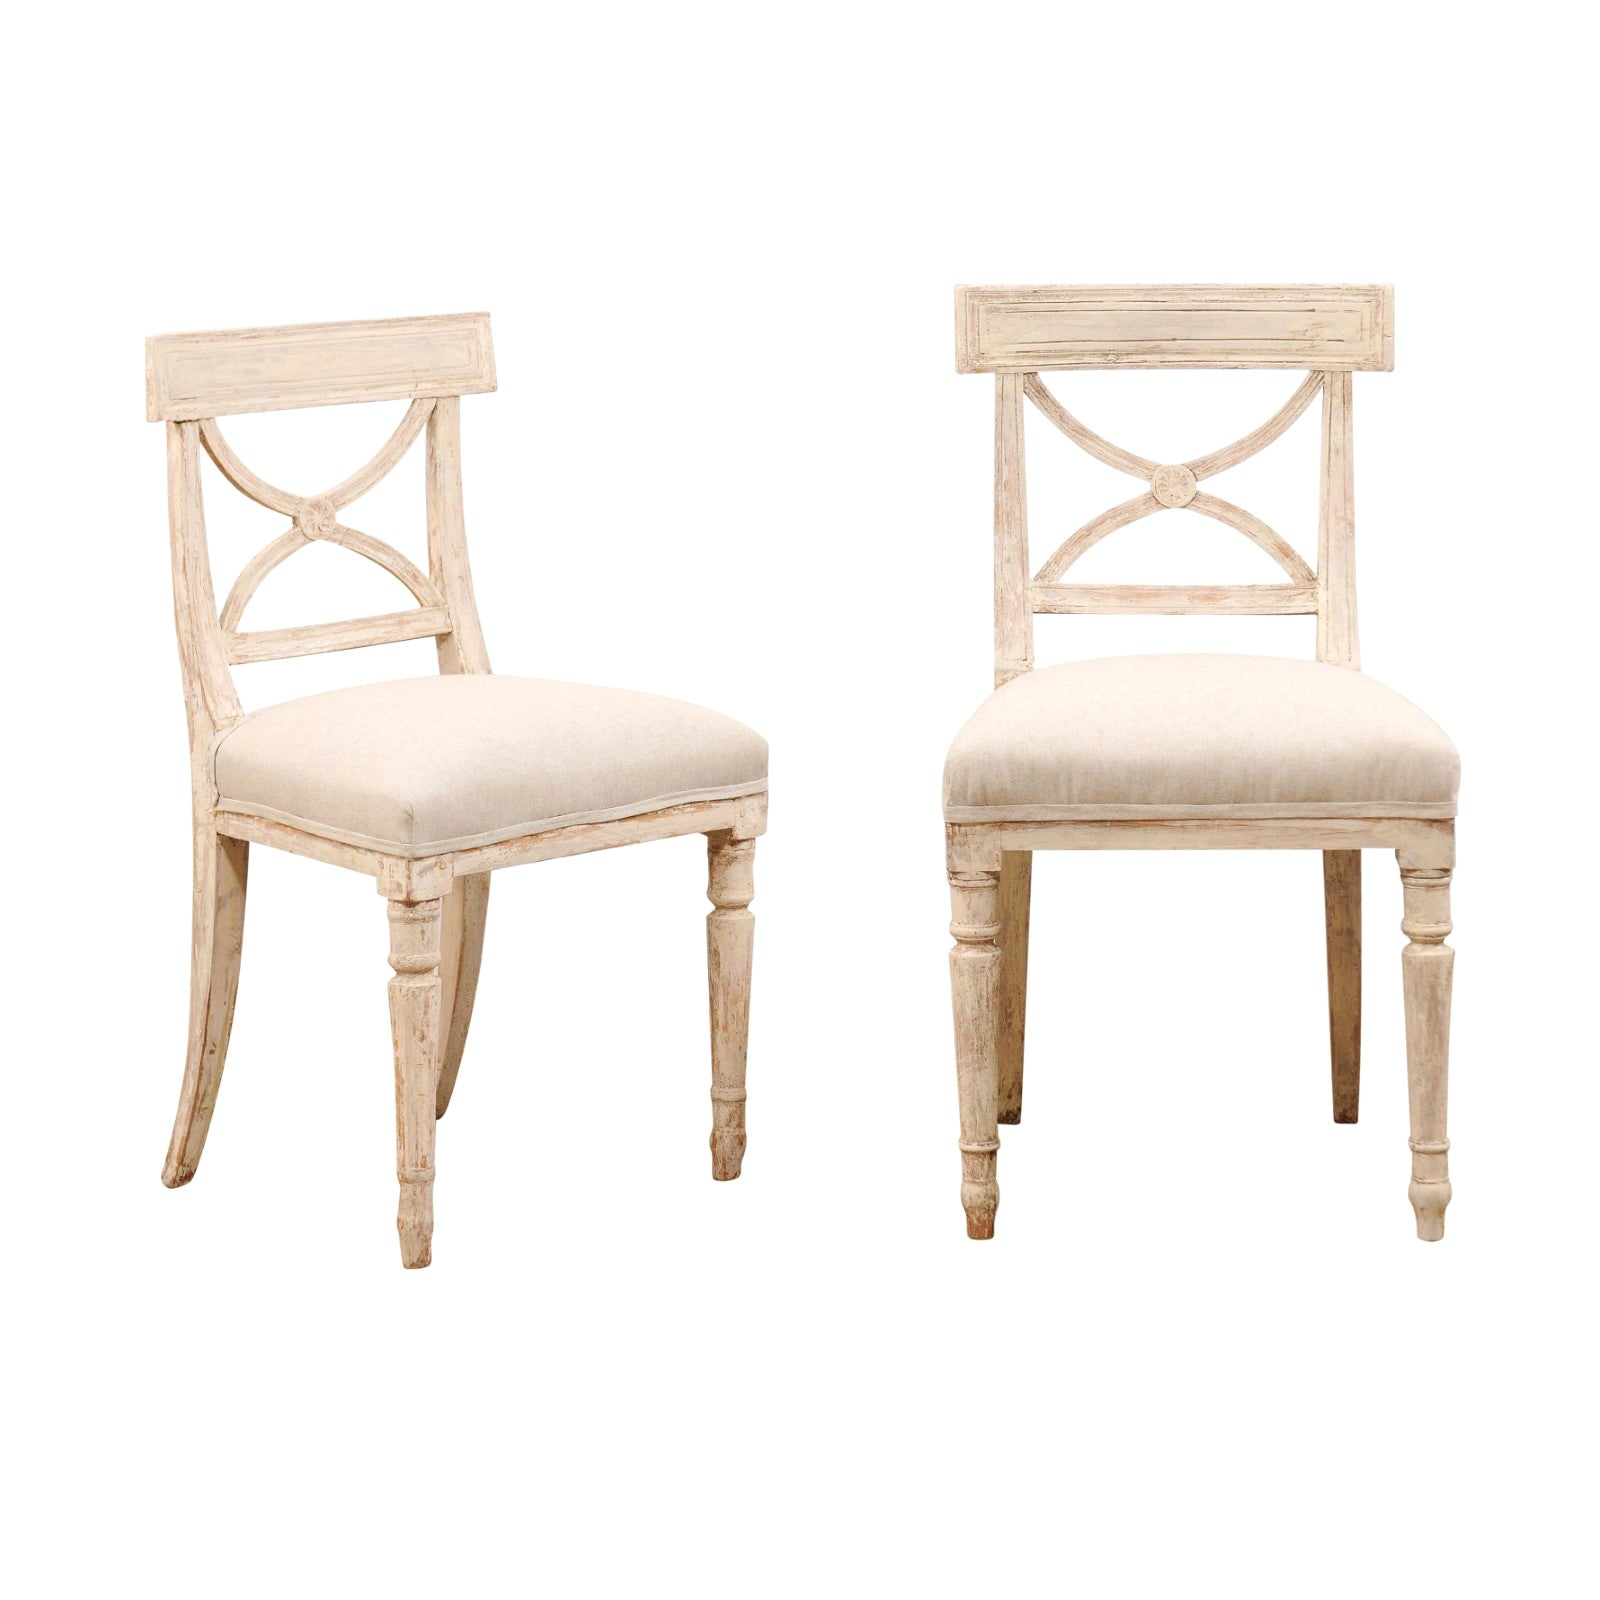 Pair of 19th Century Swedish Period Gustavian Side Chairs with Open Carved Backs